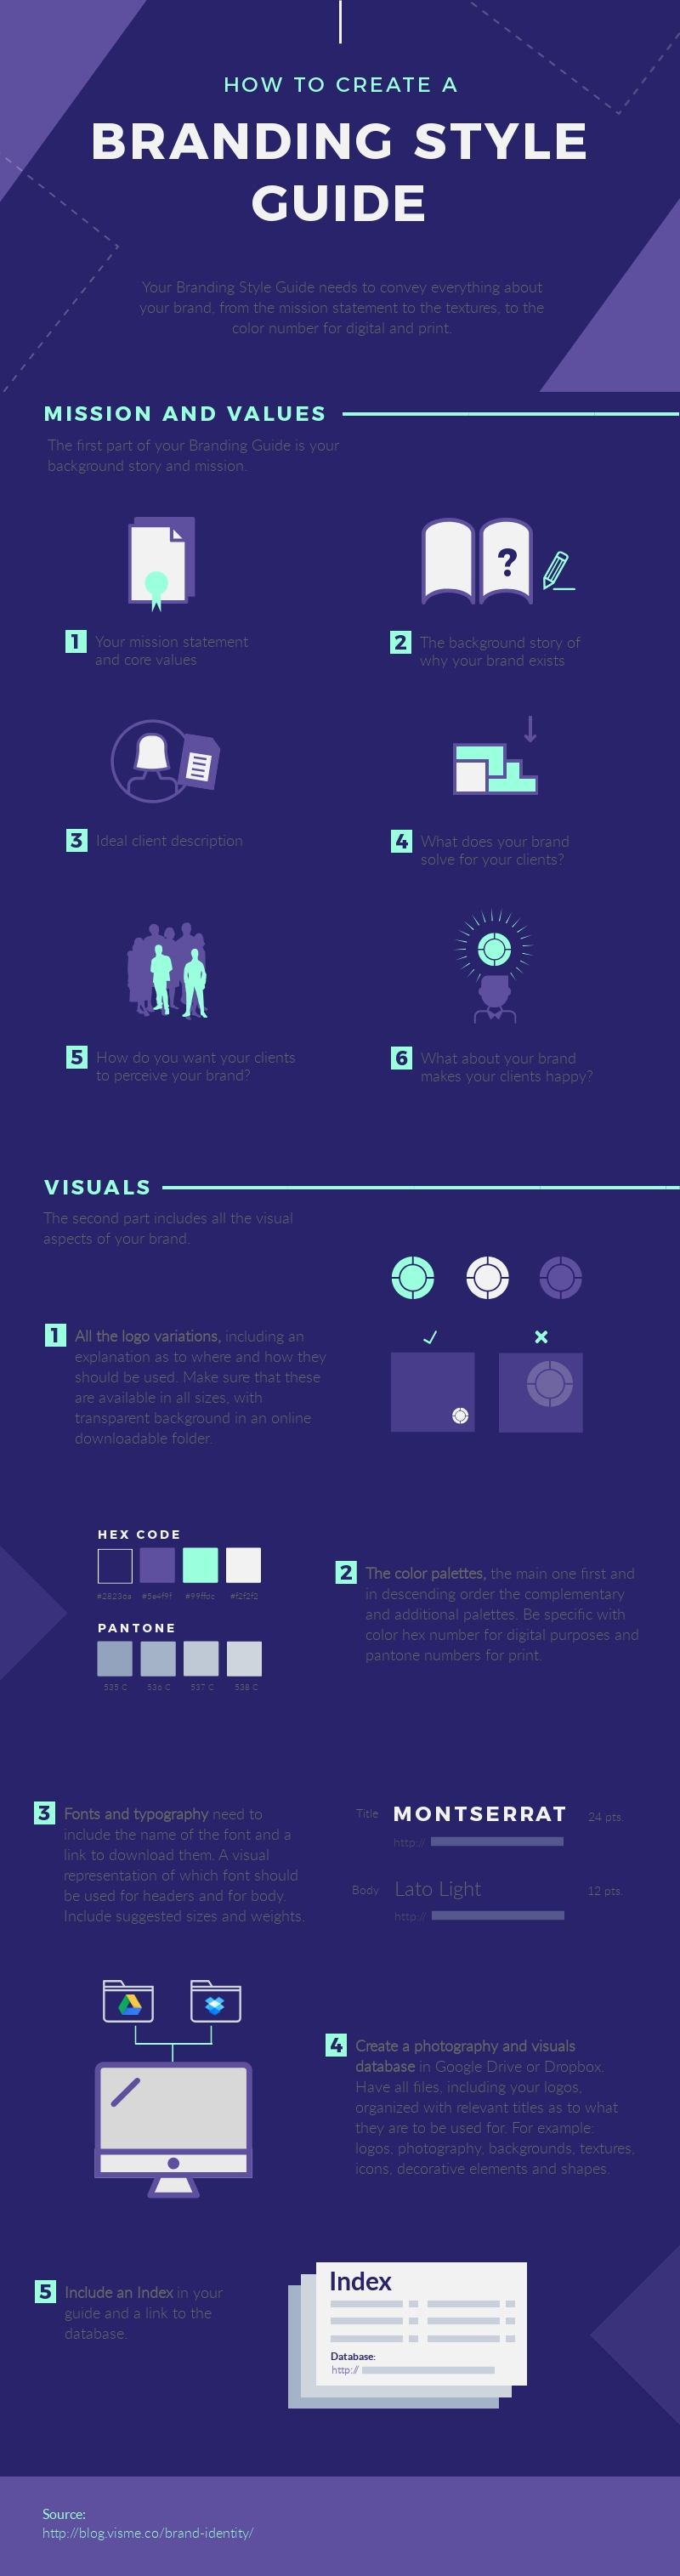 How to Create a Branding Style Guide - Infographic Template